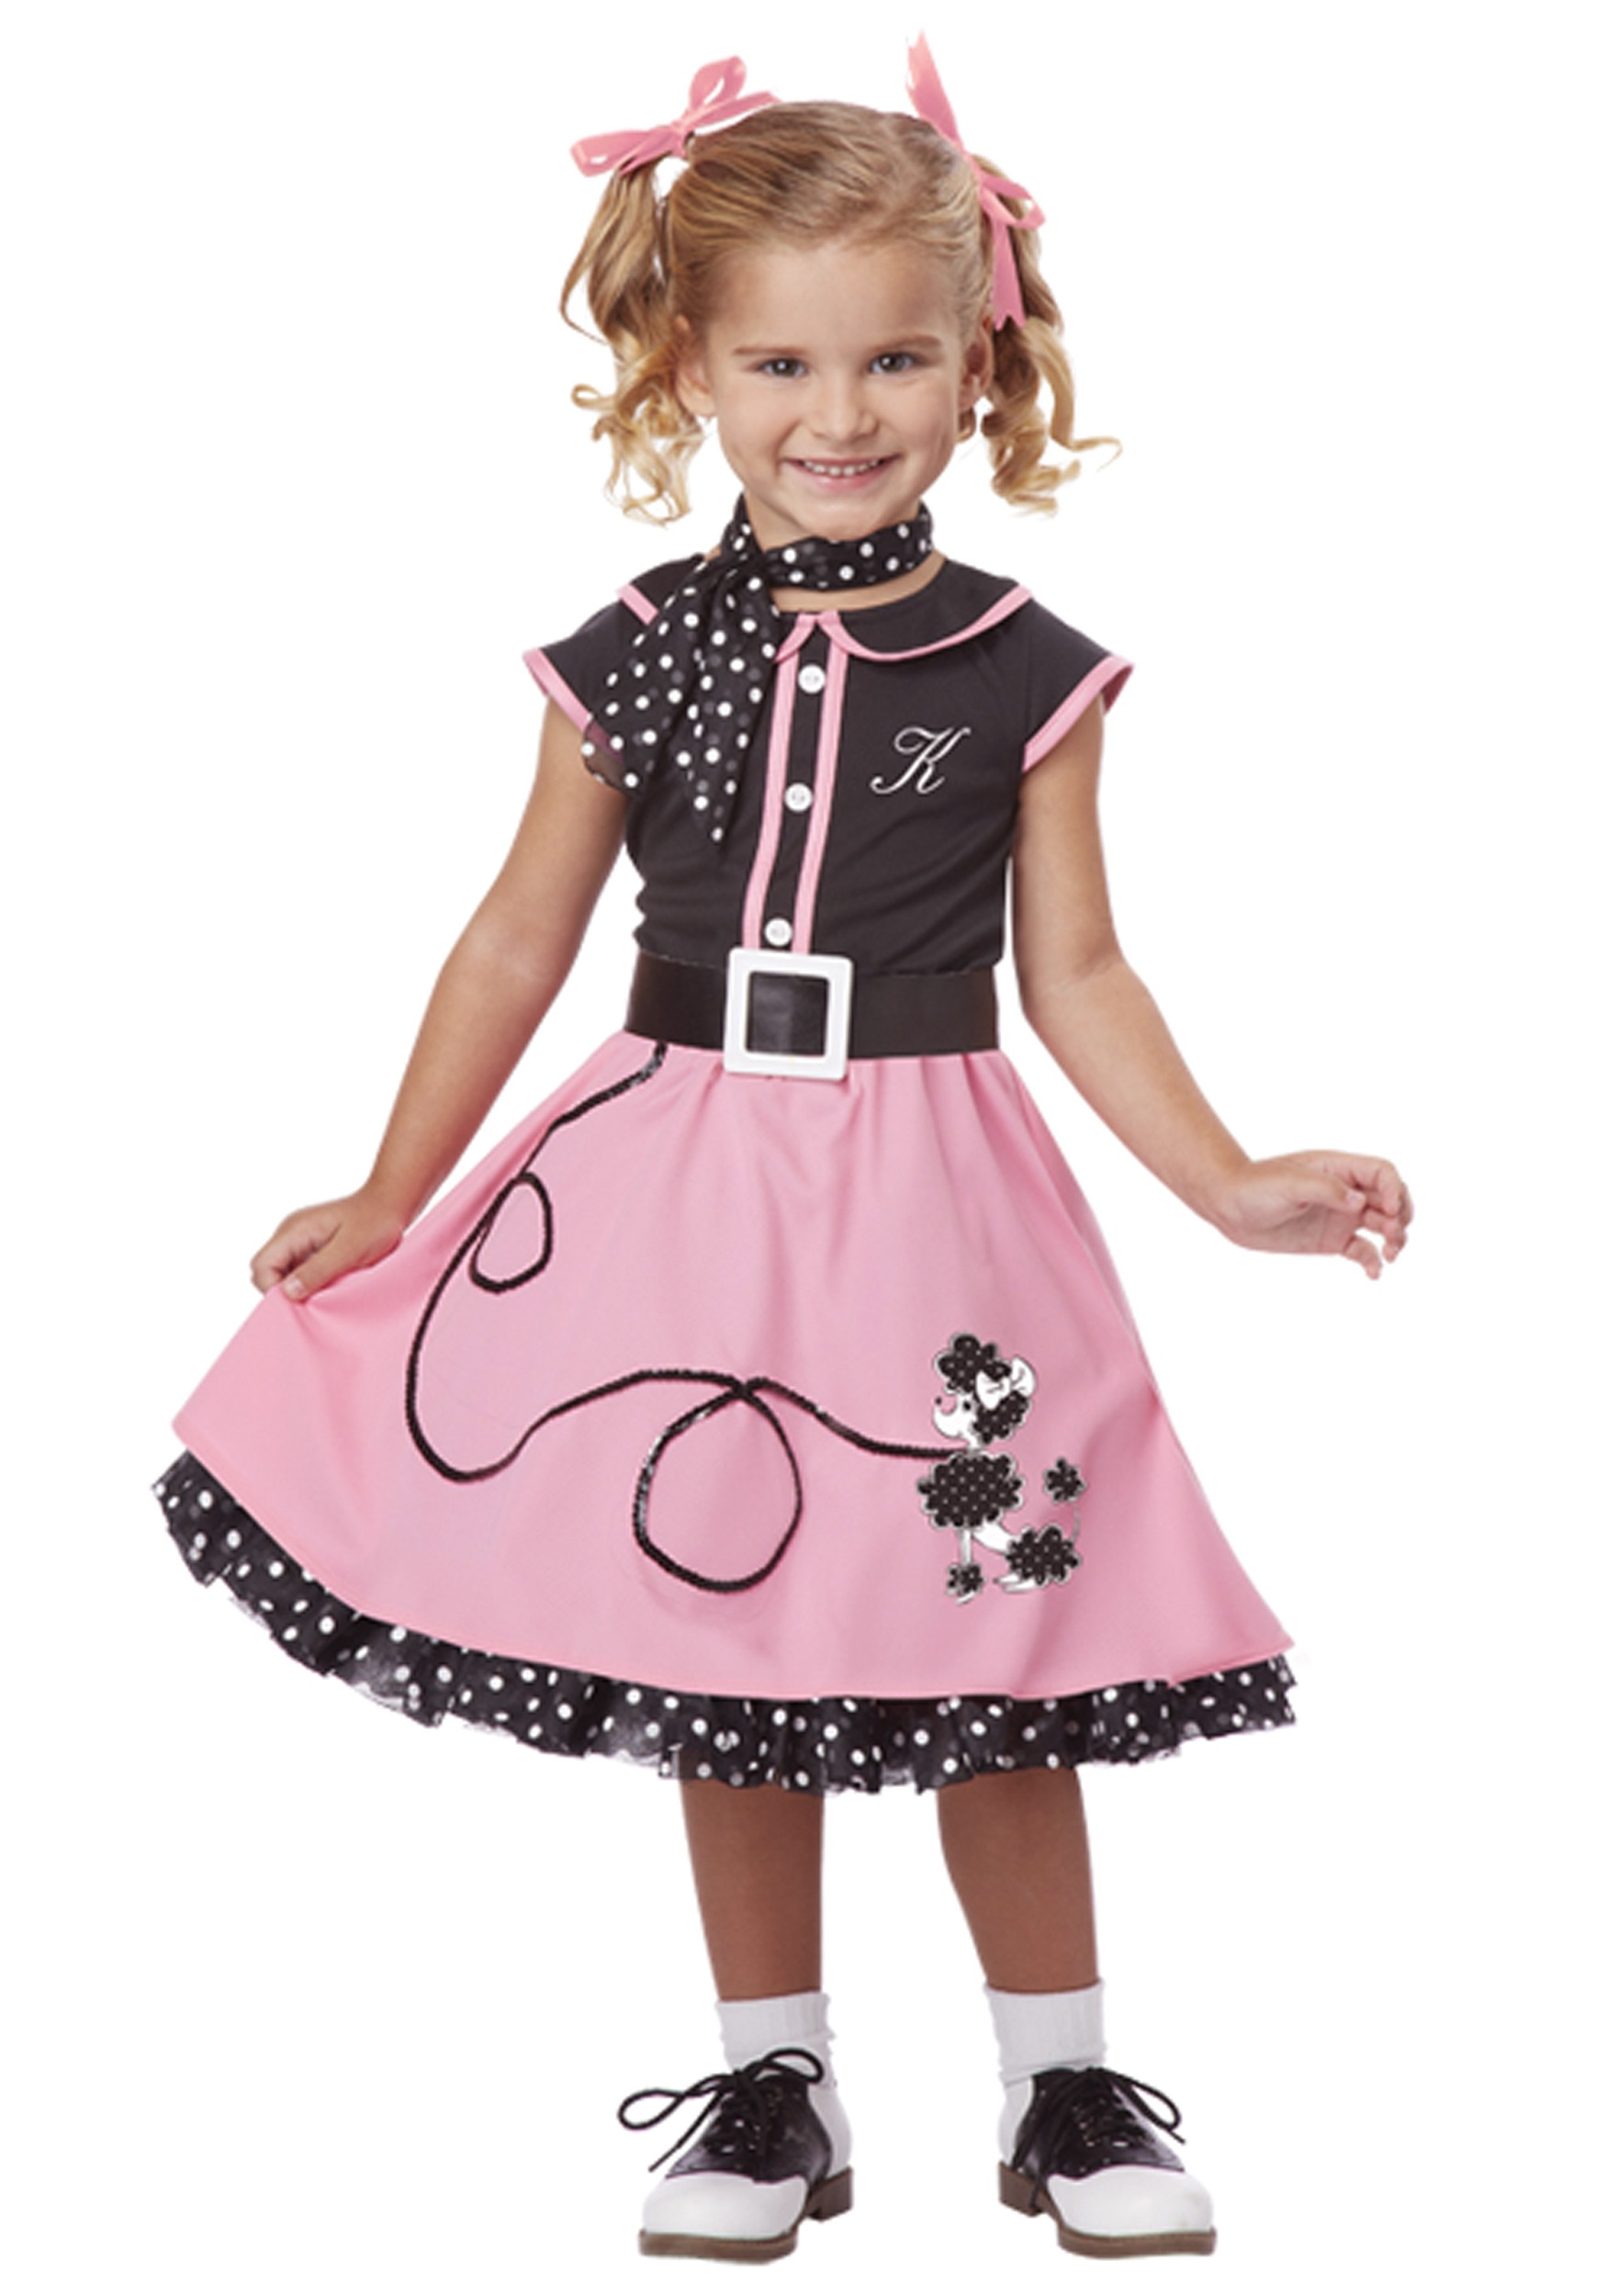 Toddler 50s Poodle Cutie Costume Halloween Costume Ideas 2016